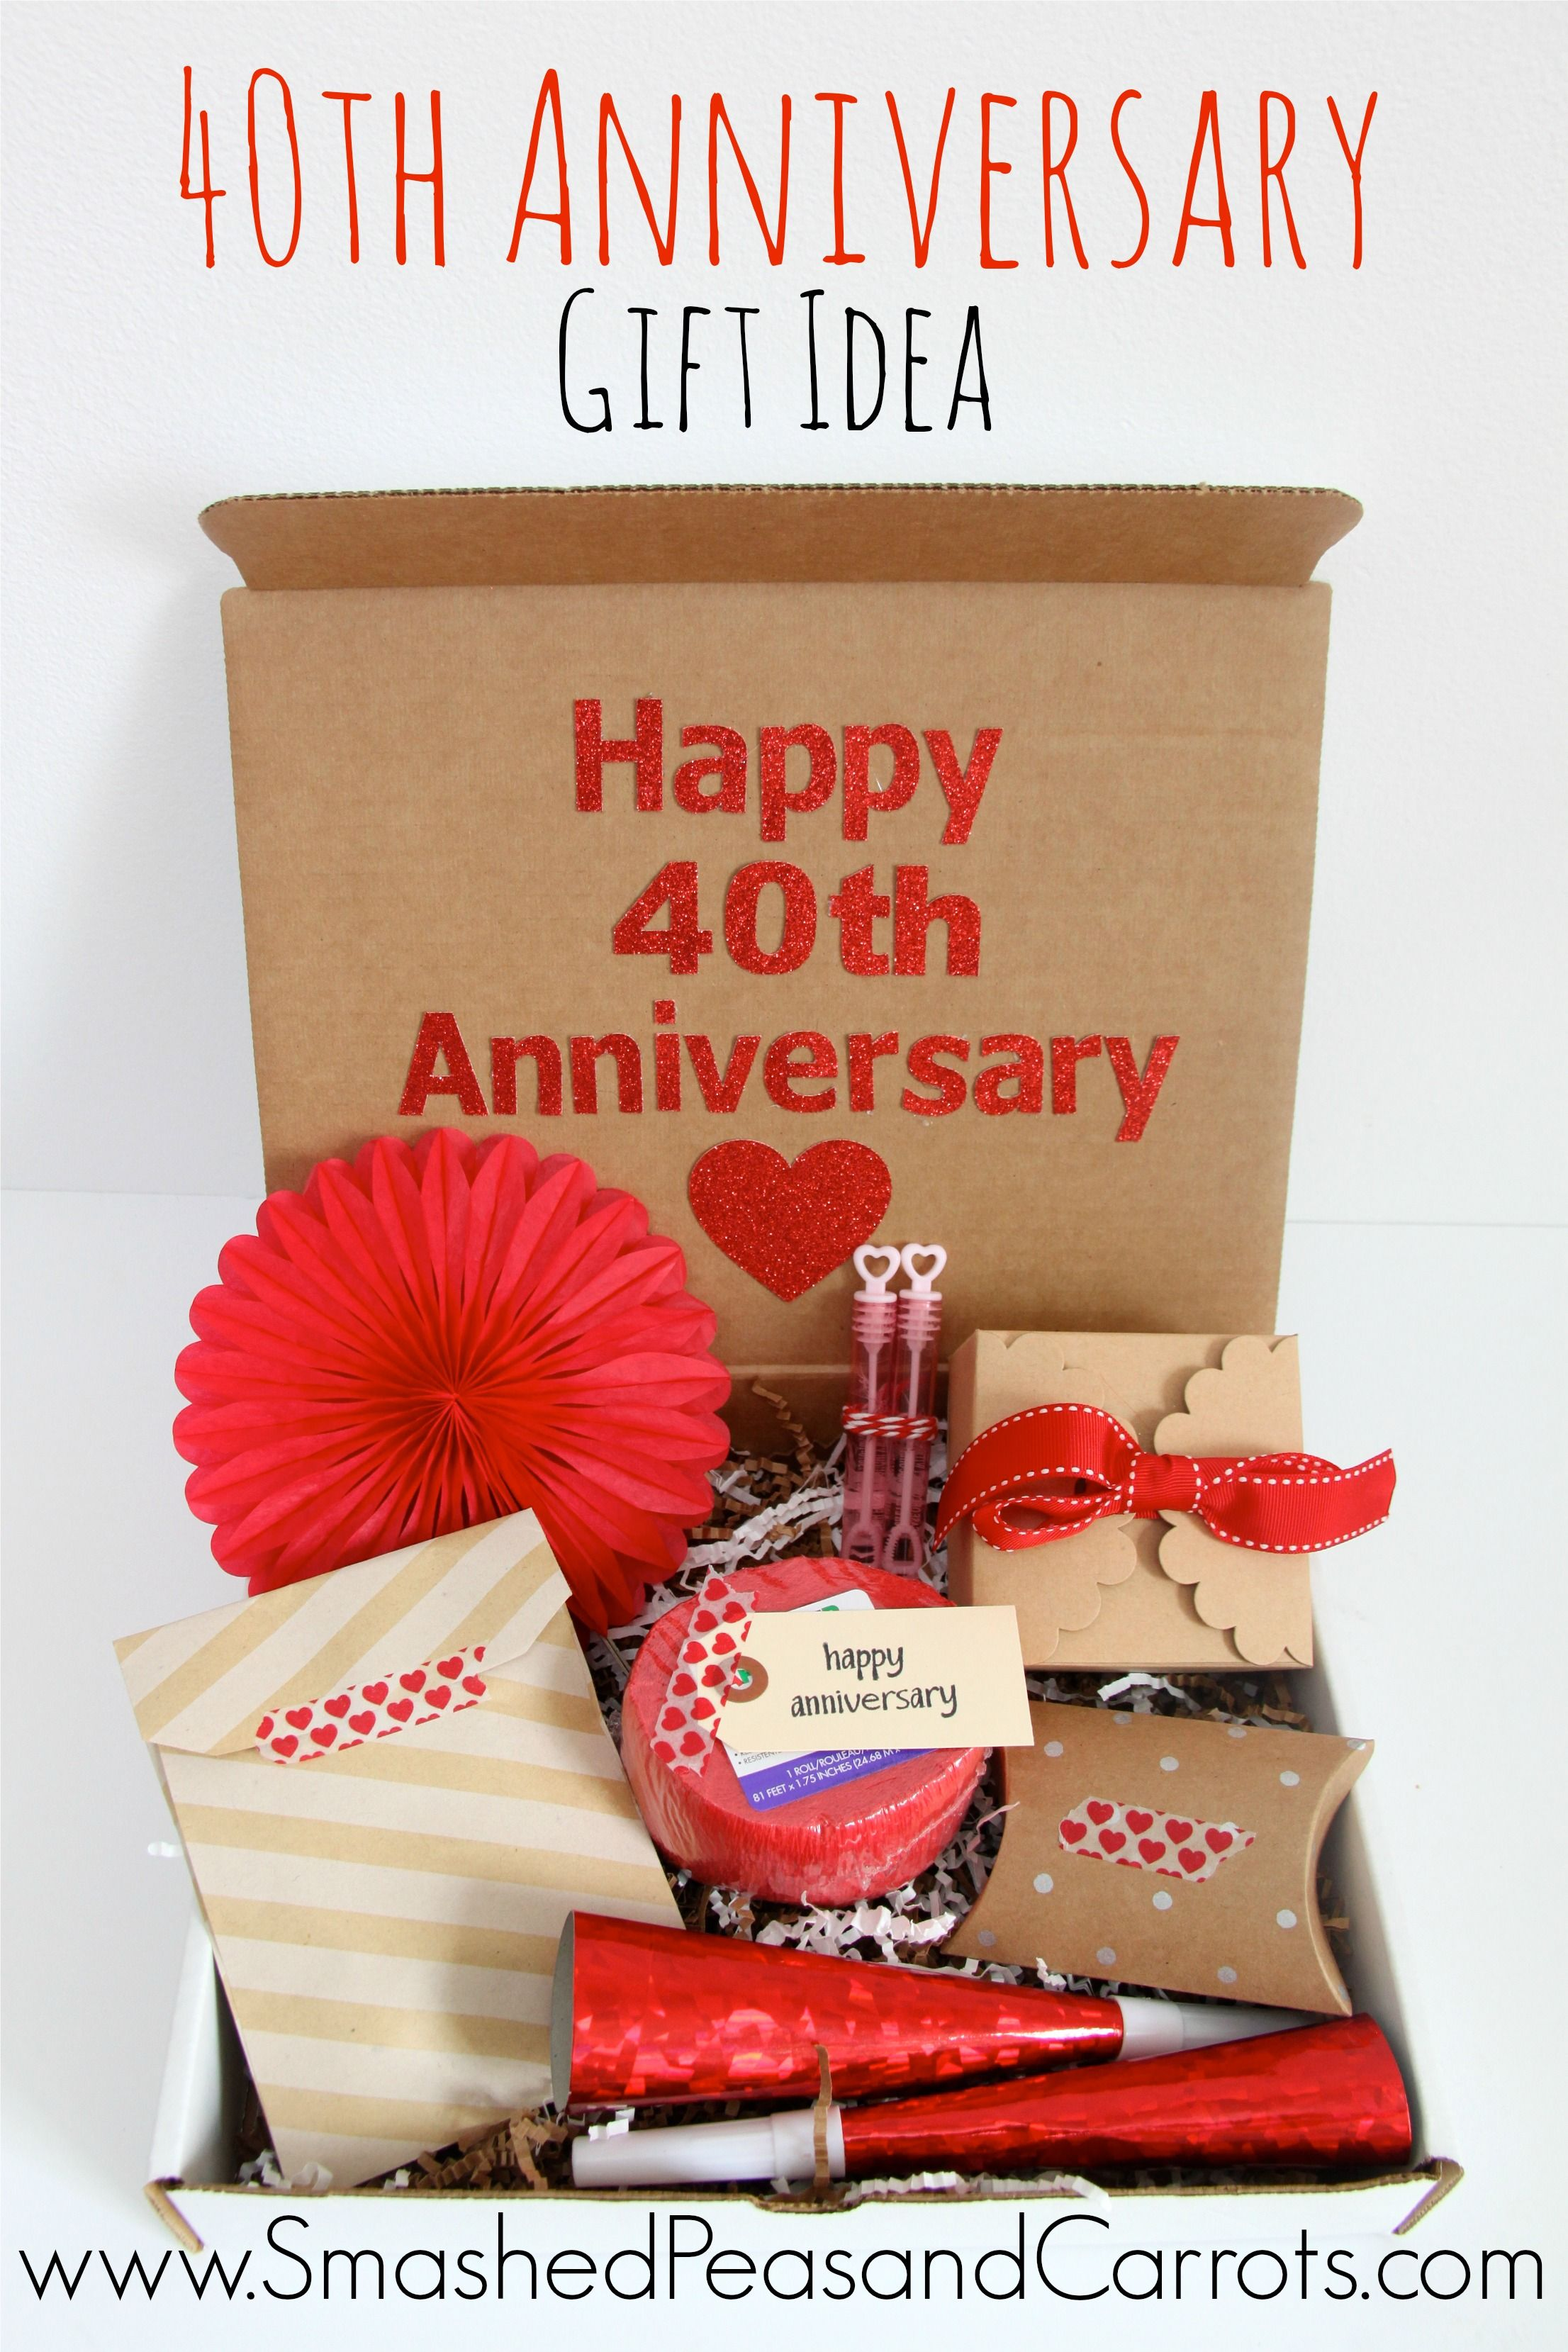 Happy 40th Anniversary Gift Idea 40th Anniversary Gifts